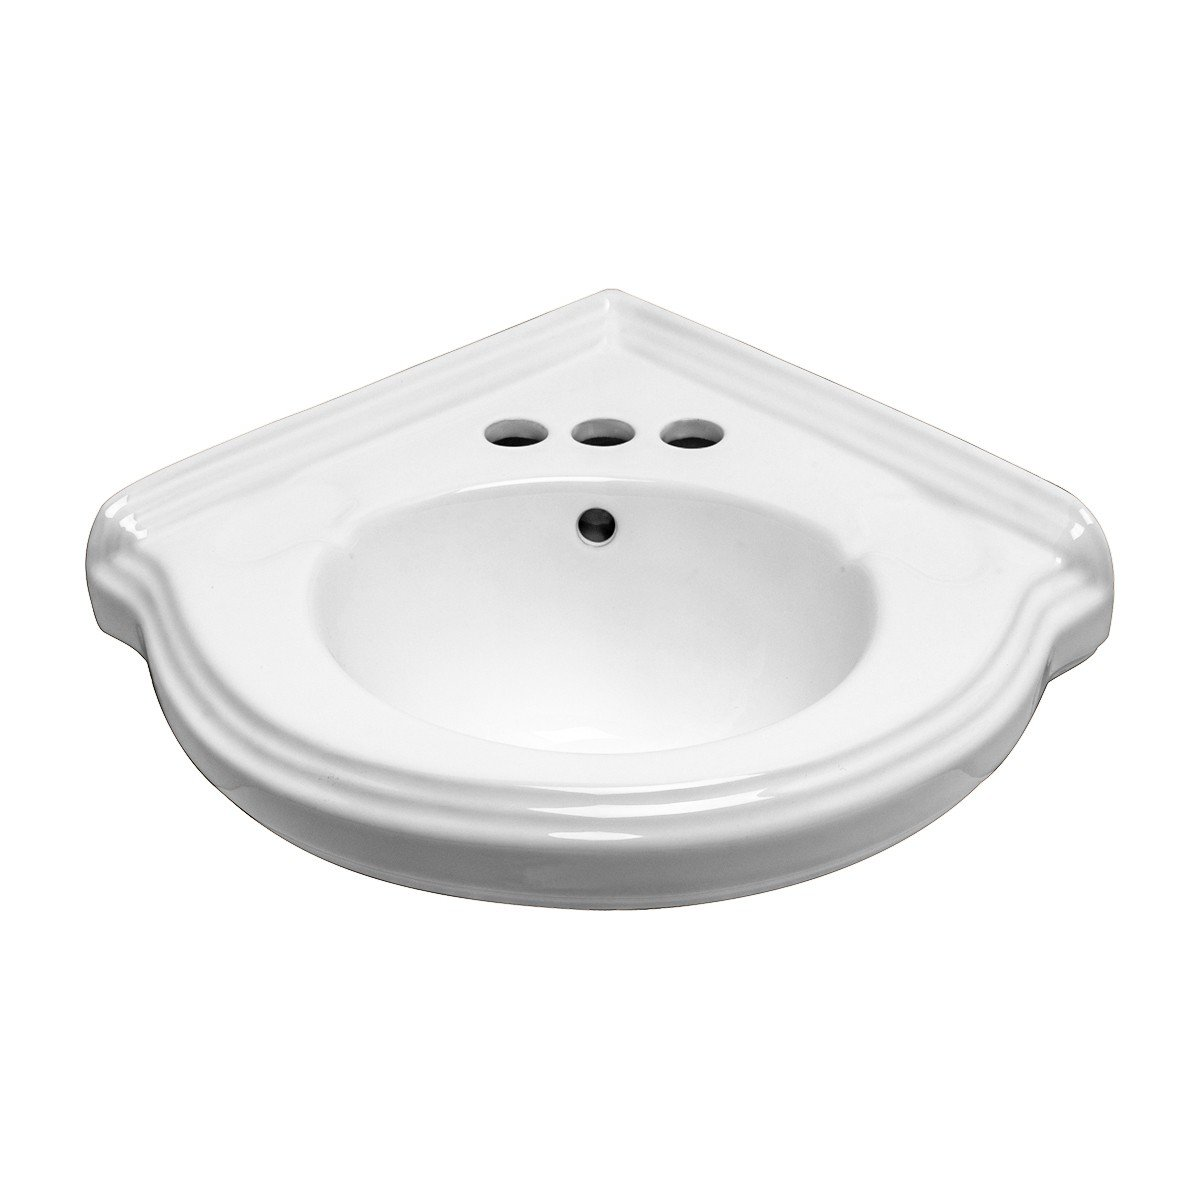 White Bathroom Sink Corner Wall Hung Console Vitreous China Ceramic Small Sink by Renovator's Supply